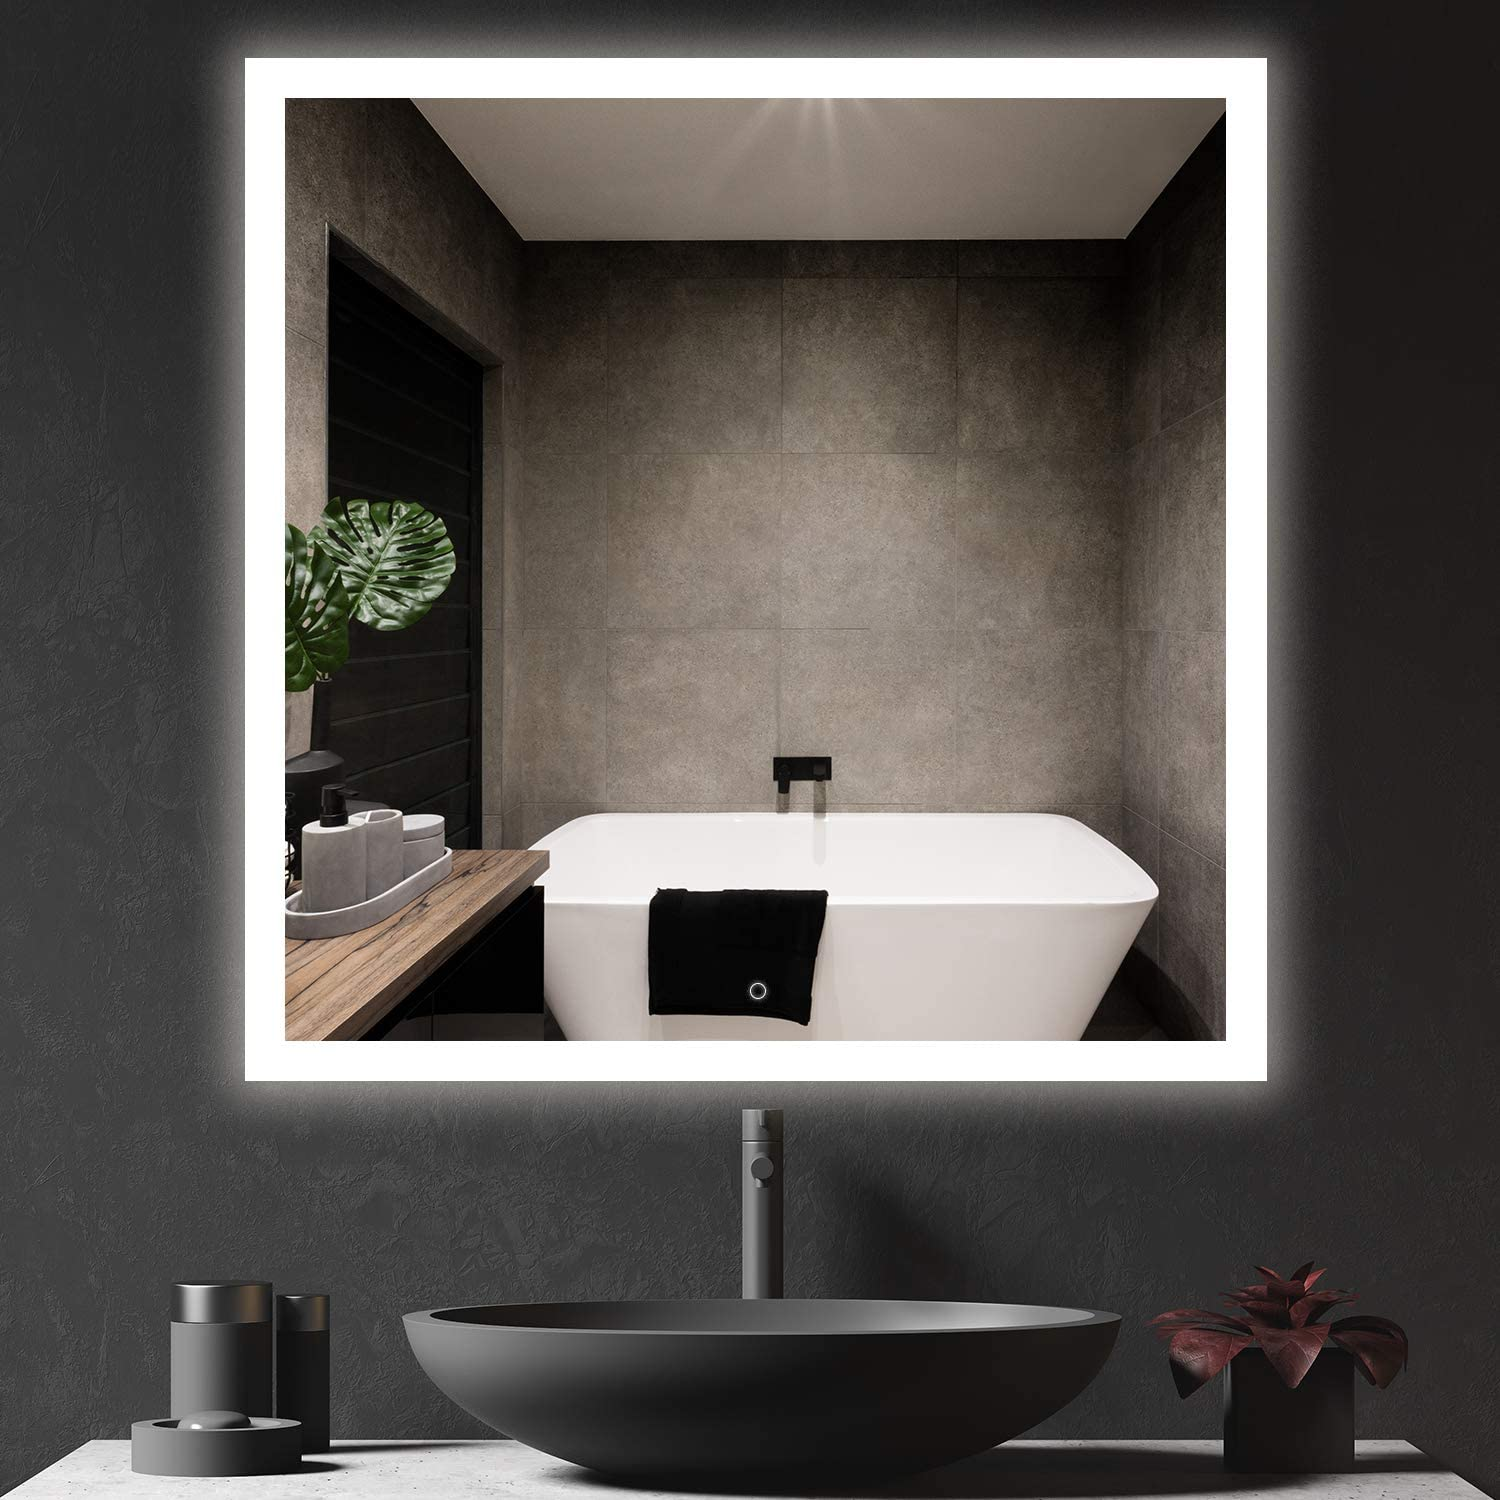 Roomtec 30x30 Inch LED Bathroom IP44 Light Backlit Mirror 6000 Discount mail store order